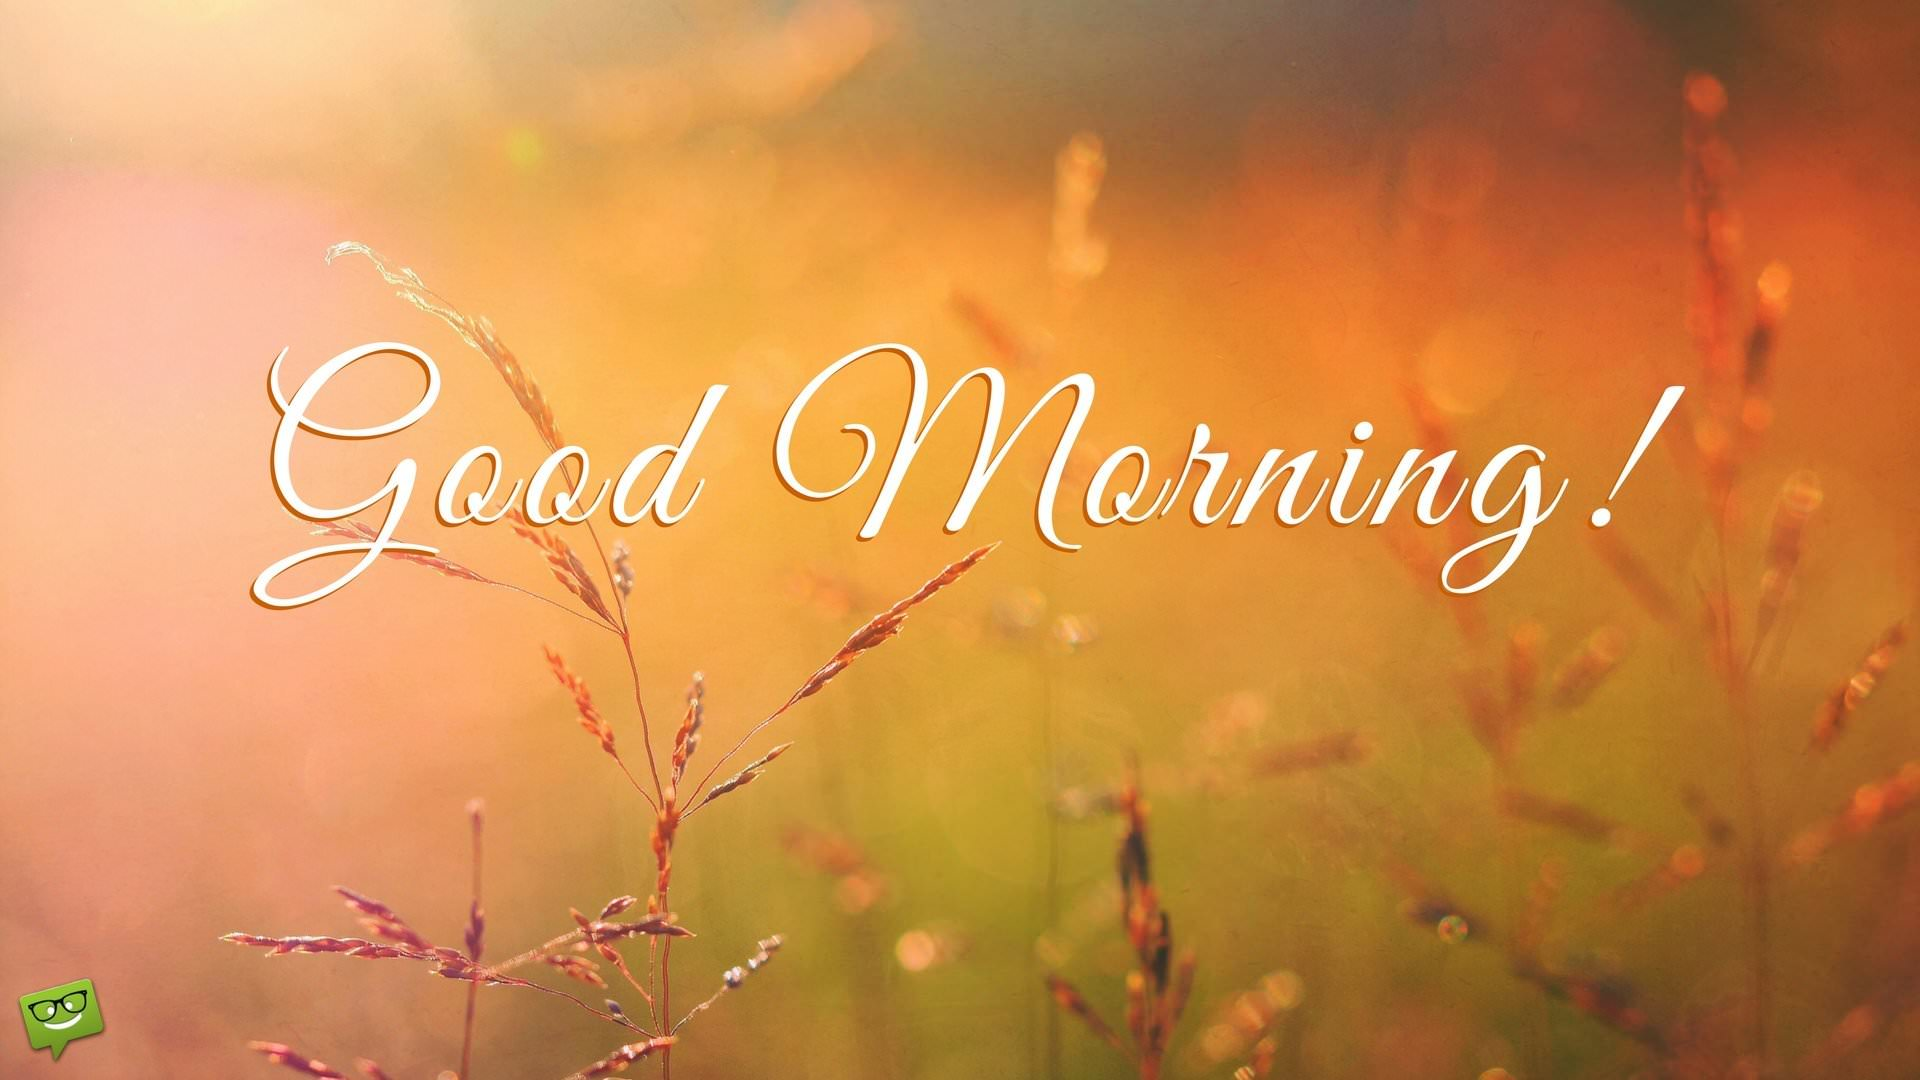 Good Morning Everyone Letter: Inspirational Good Morning Messages